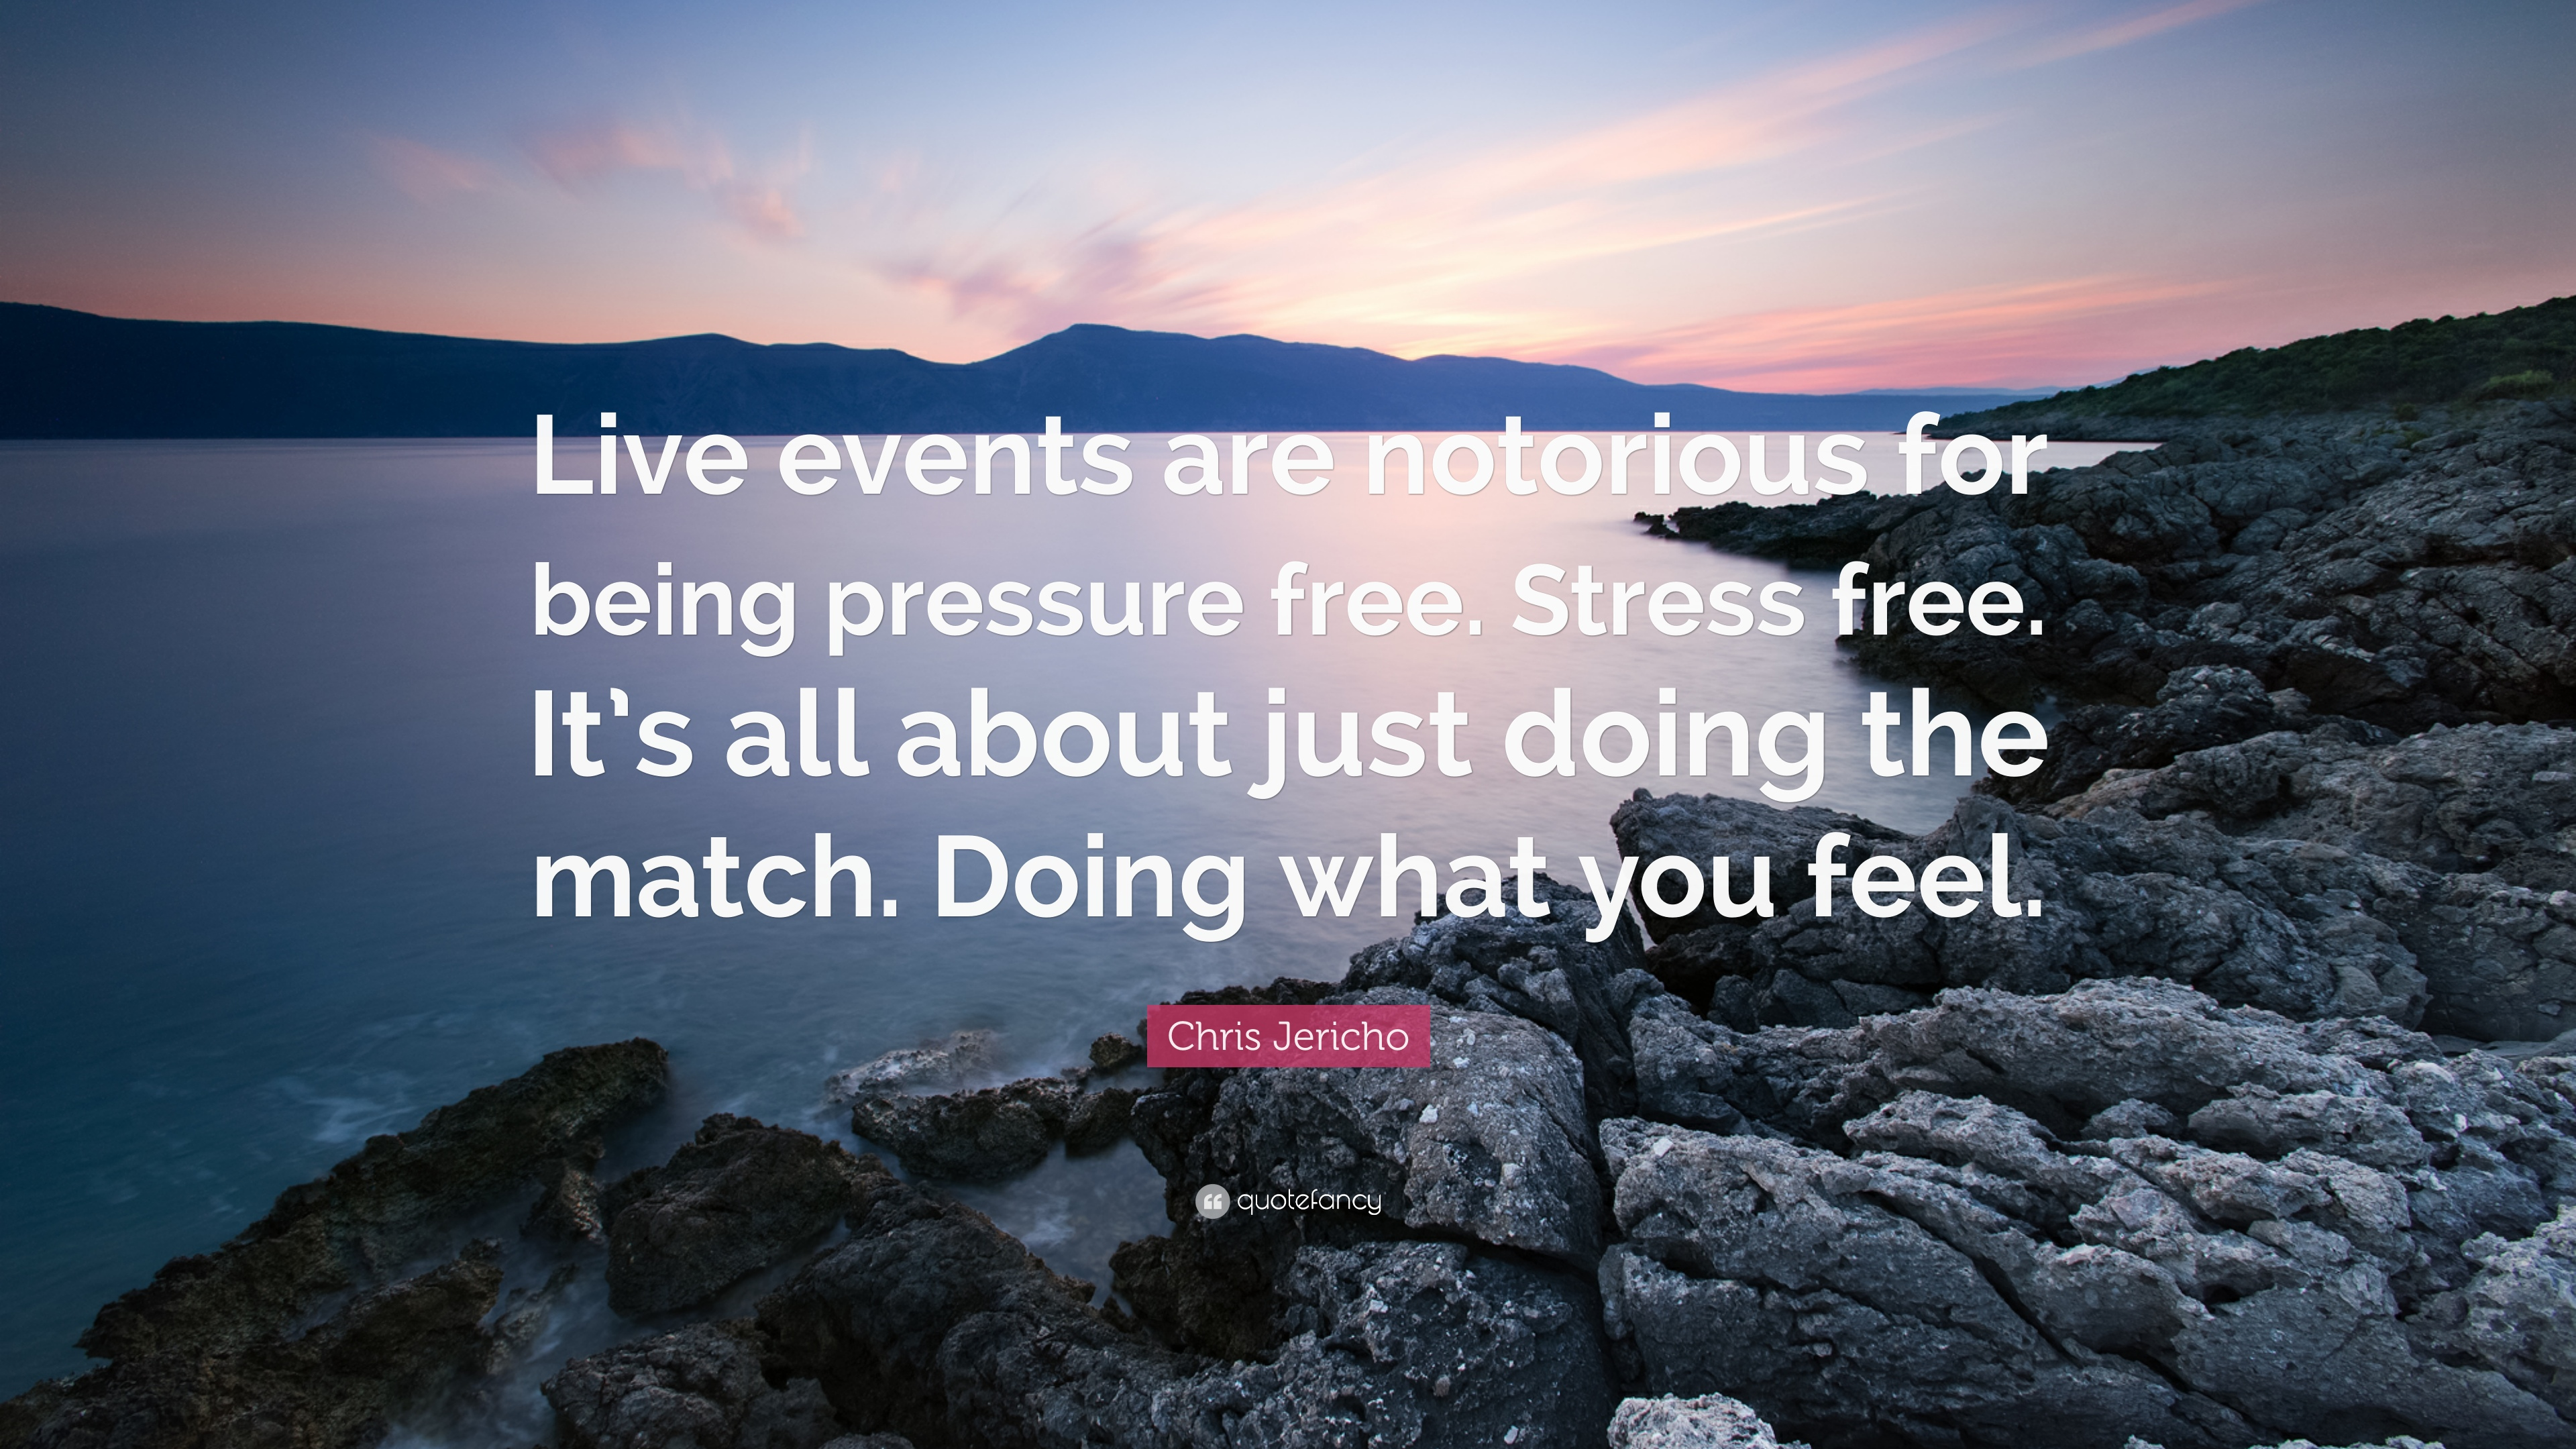 Chris Jericho Quote Live Events Are Notorious For Being Pressure Free Stress Free It S All About Just Doing The Match Doing What You Feel 7 Wallpapers Quotefancy